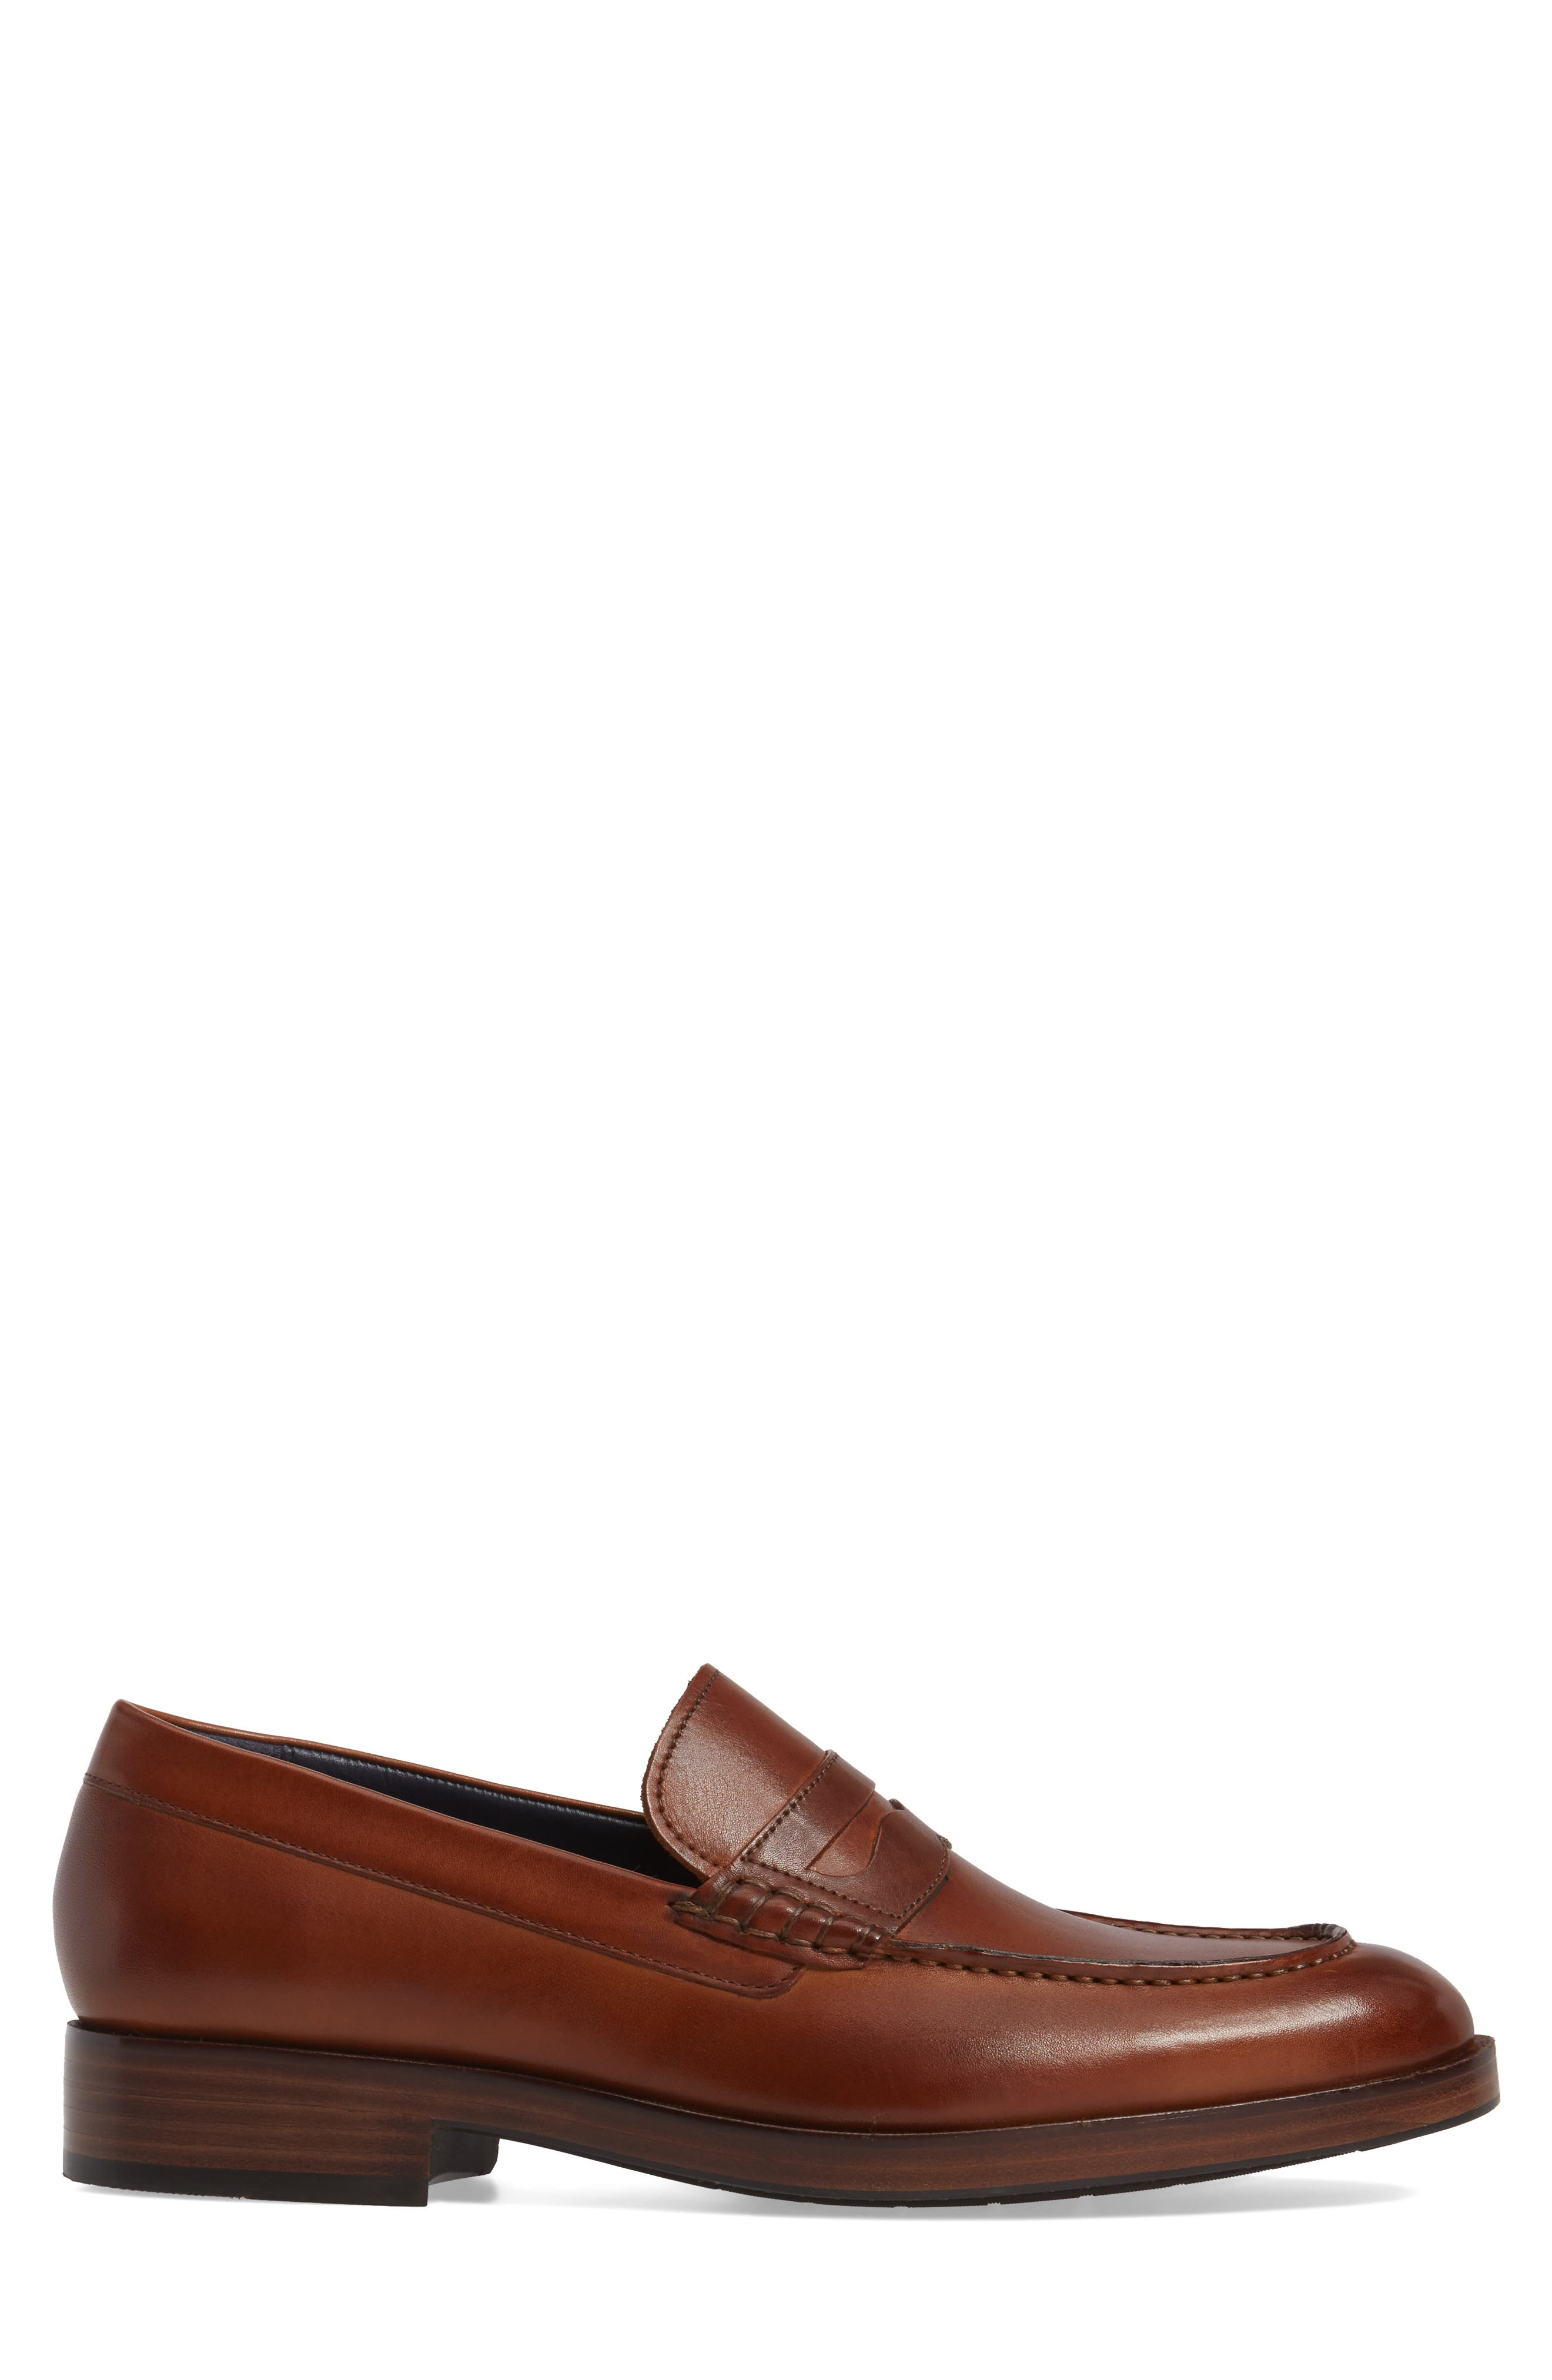 COLE HAAN, Harrison Grand Penny Loafer, Alternate thumbnail 3, color, COGNAC/ DARK NATURAL LEATHER